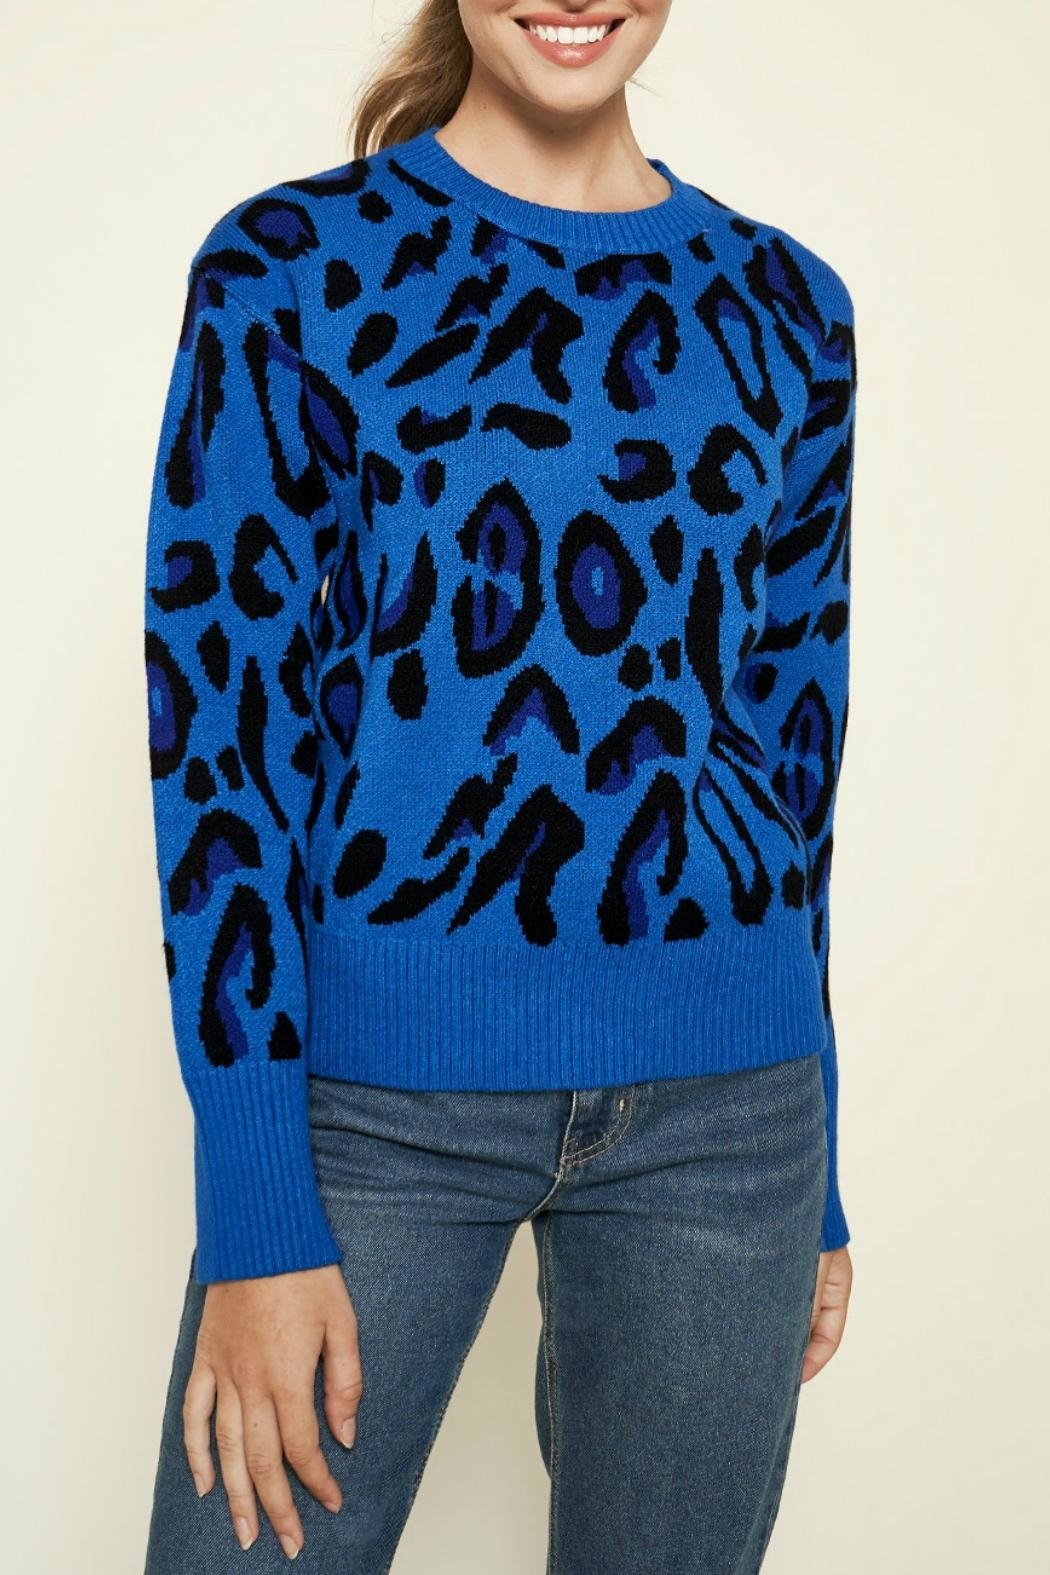 Sugar Lips Charmed Leopard Print Sweater - Main Image